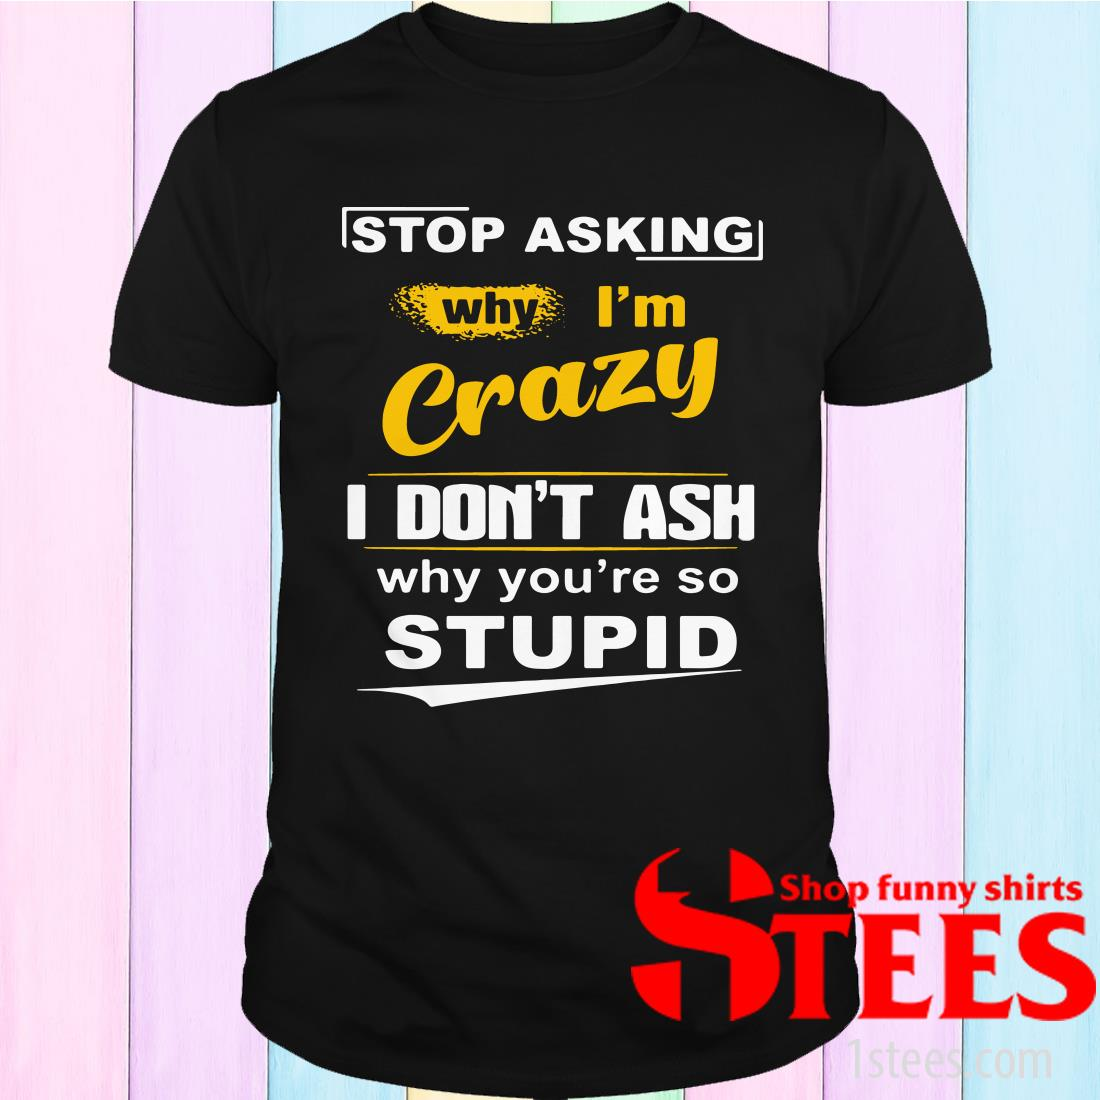 Stop Asking Why I'm Crazy I Don't Ask Why You're So Stupid Tee T-Shirt